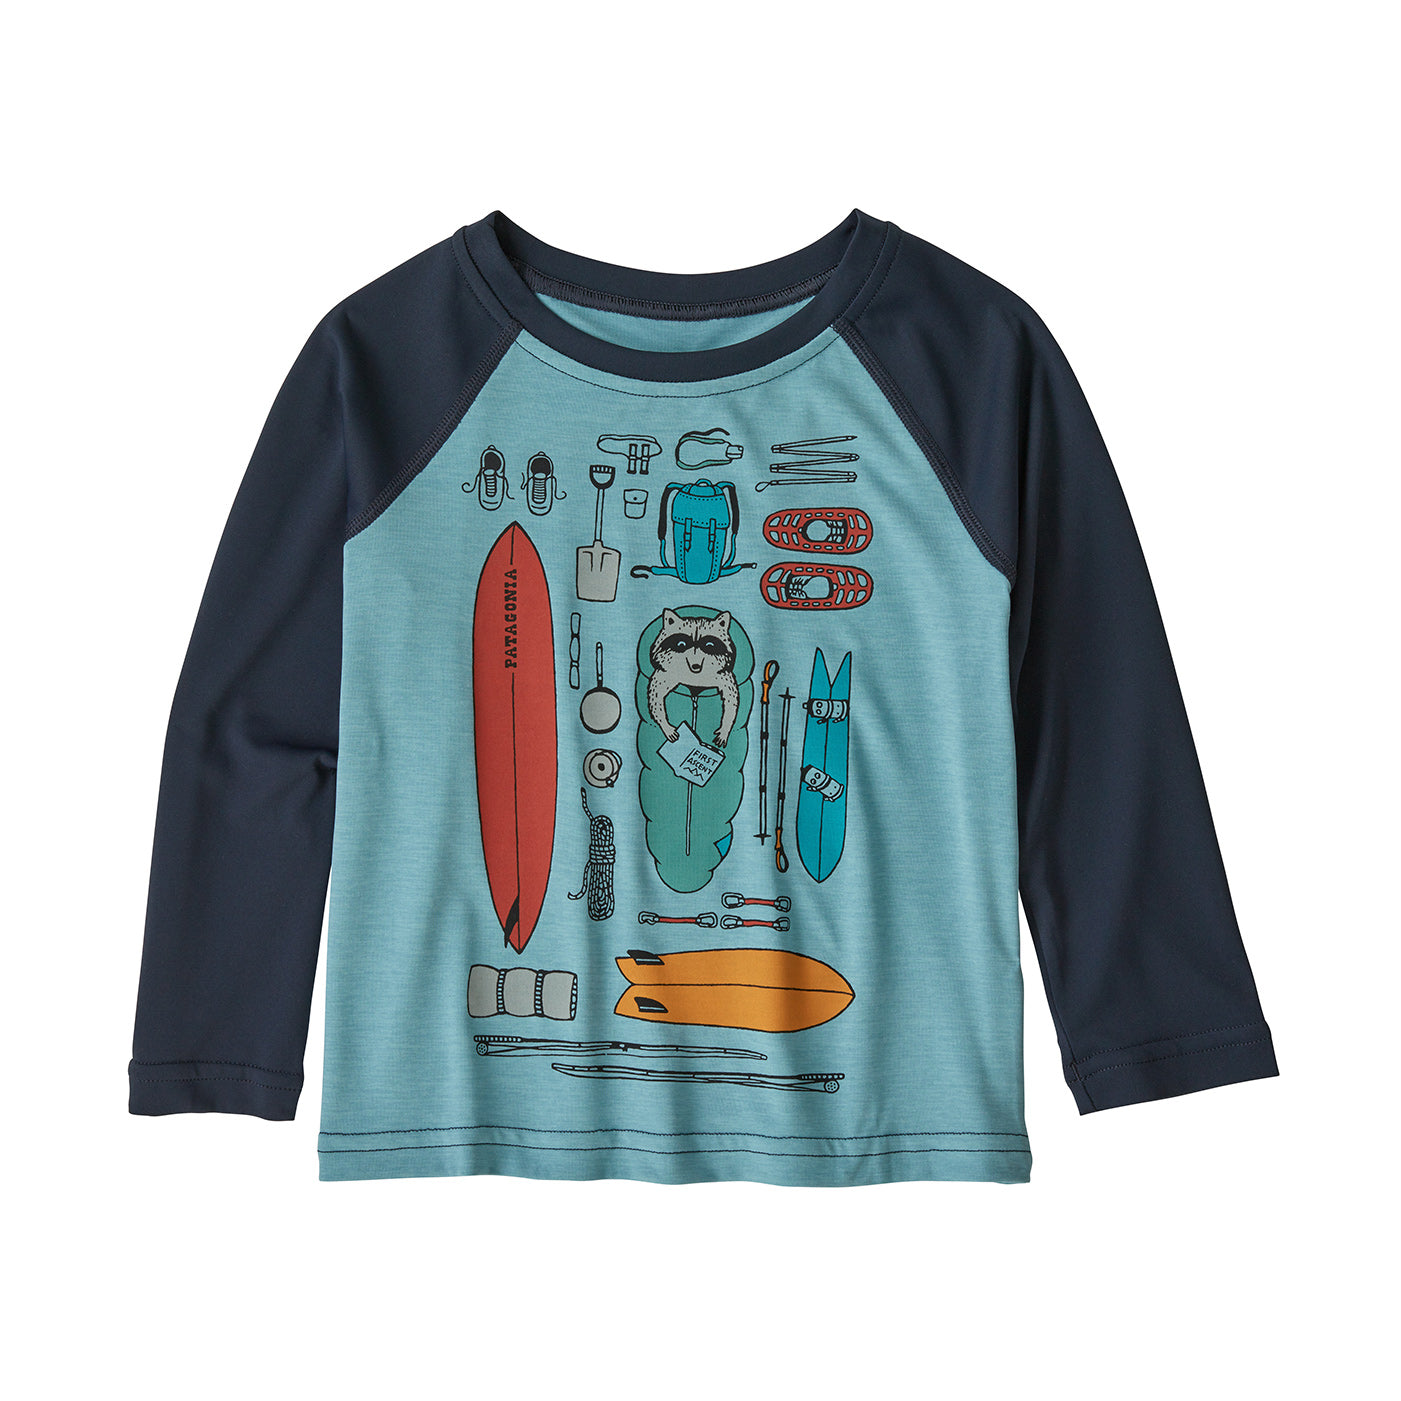 the baby cool daily tee in big sky blue x-dye/bandito kit, front view